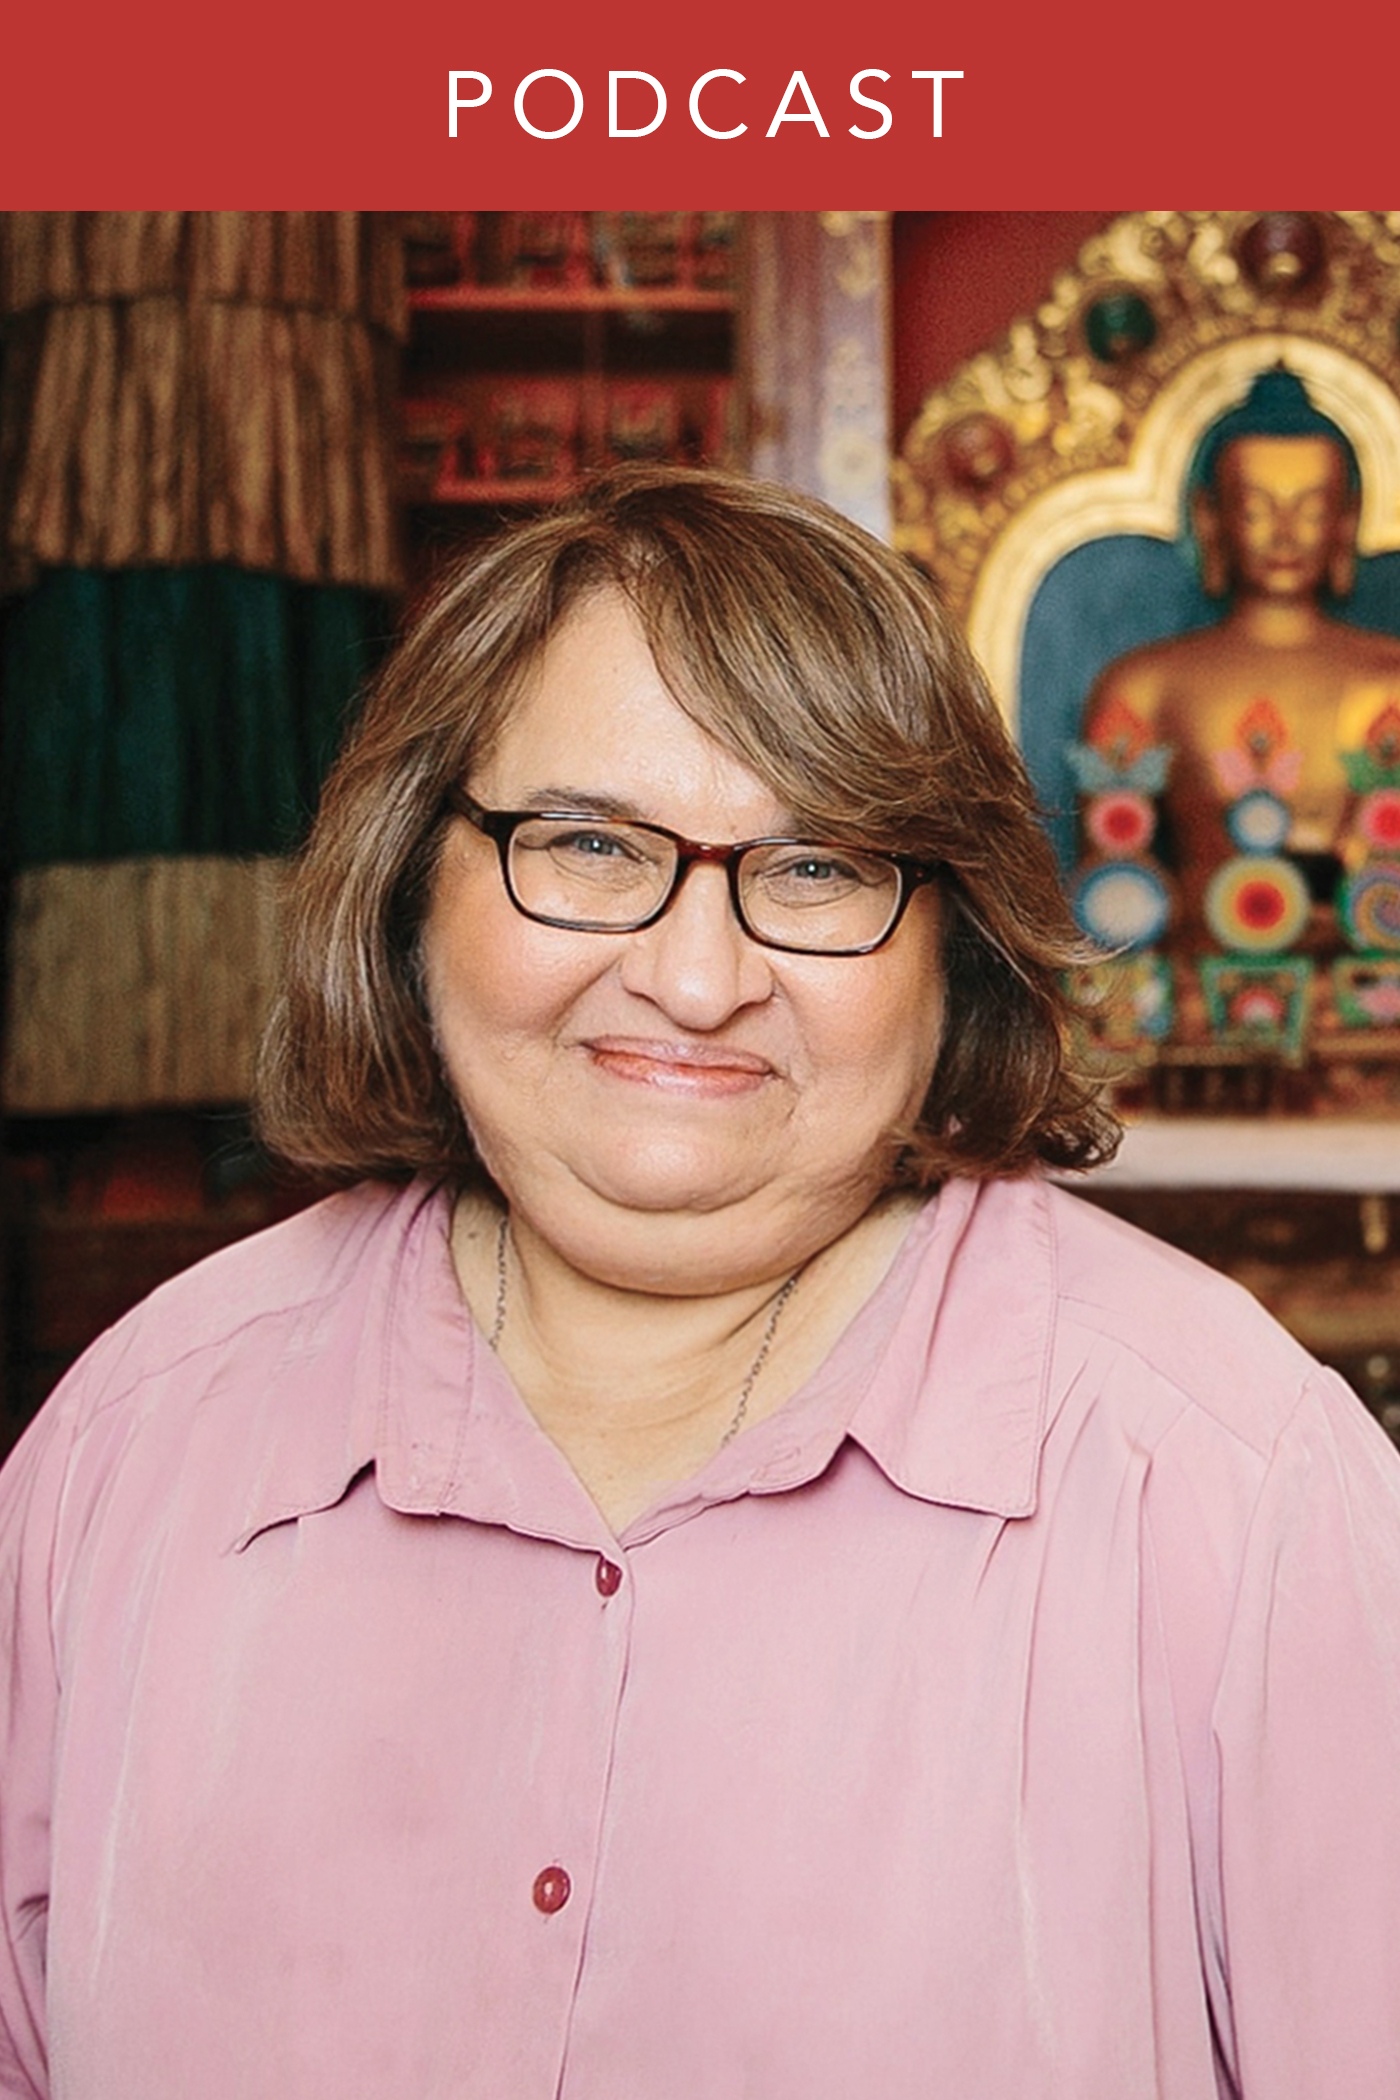 head shot of Sharon Salzberg